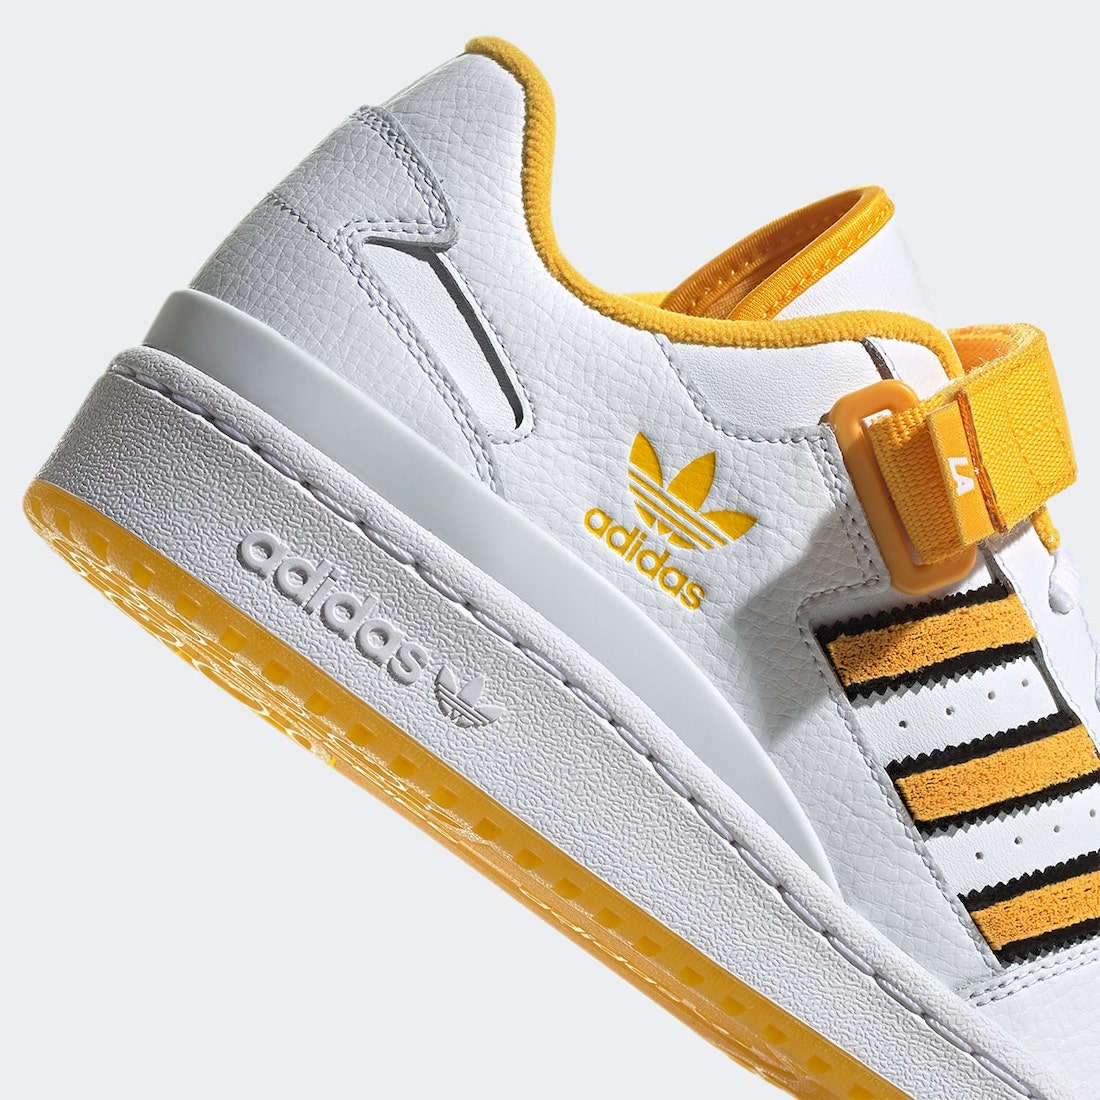 adidas Forum Low Los Angeles GY2670 Release Date